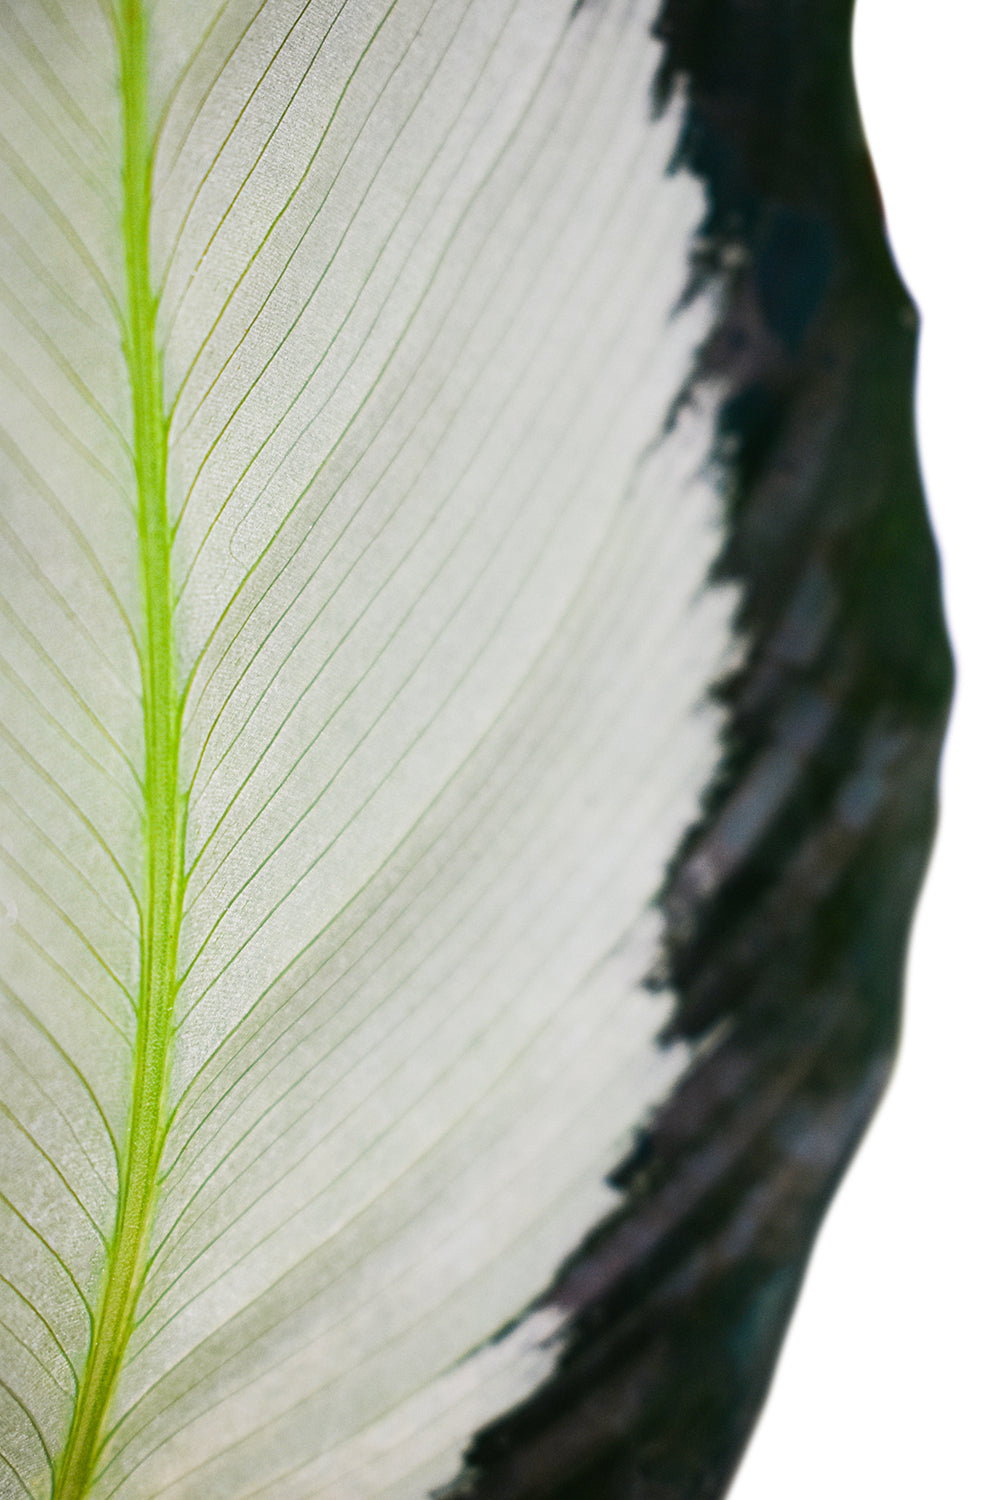 calathea picturata silver leaf close up